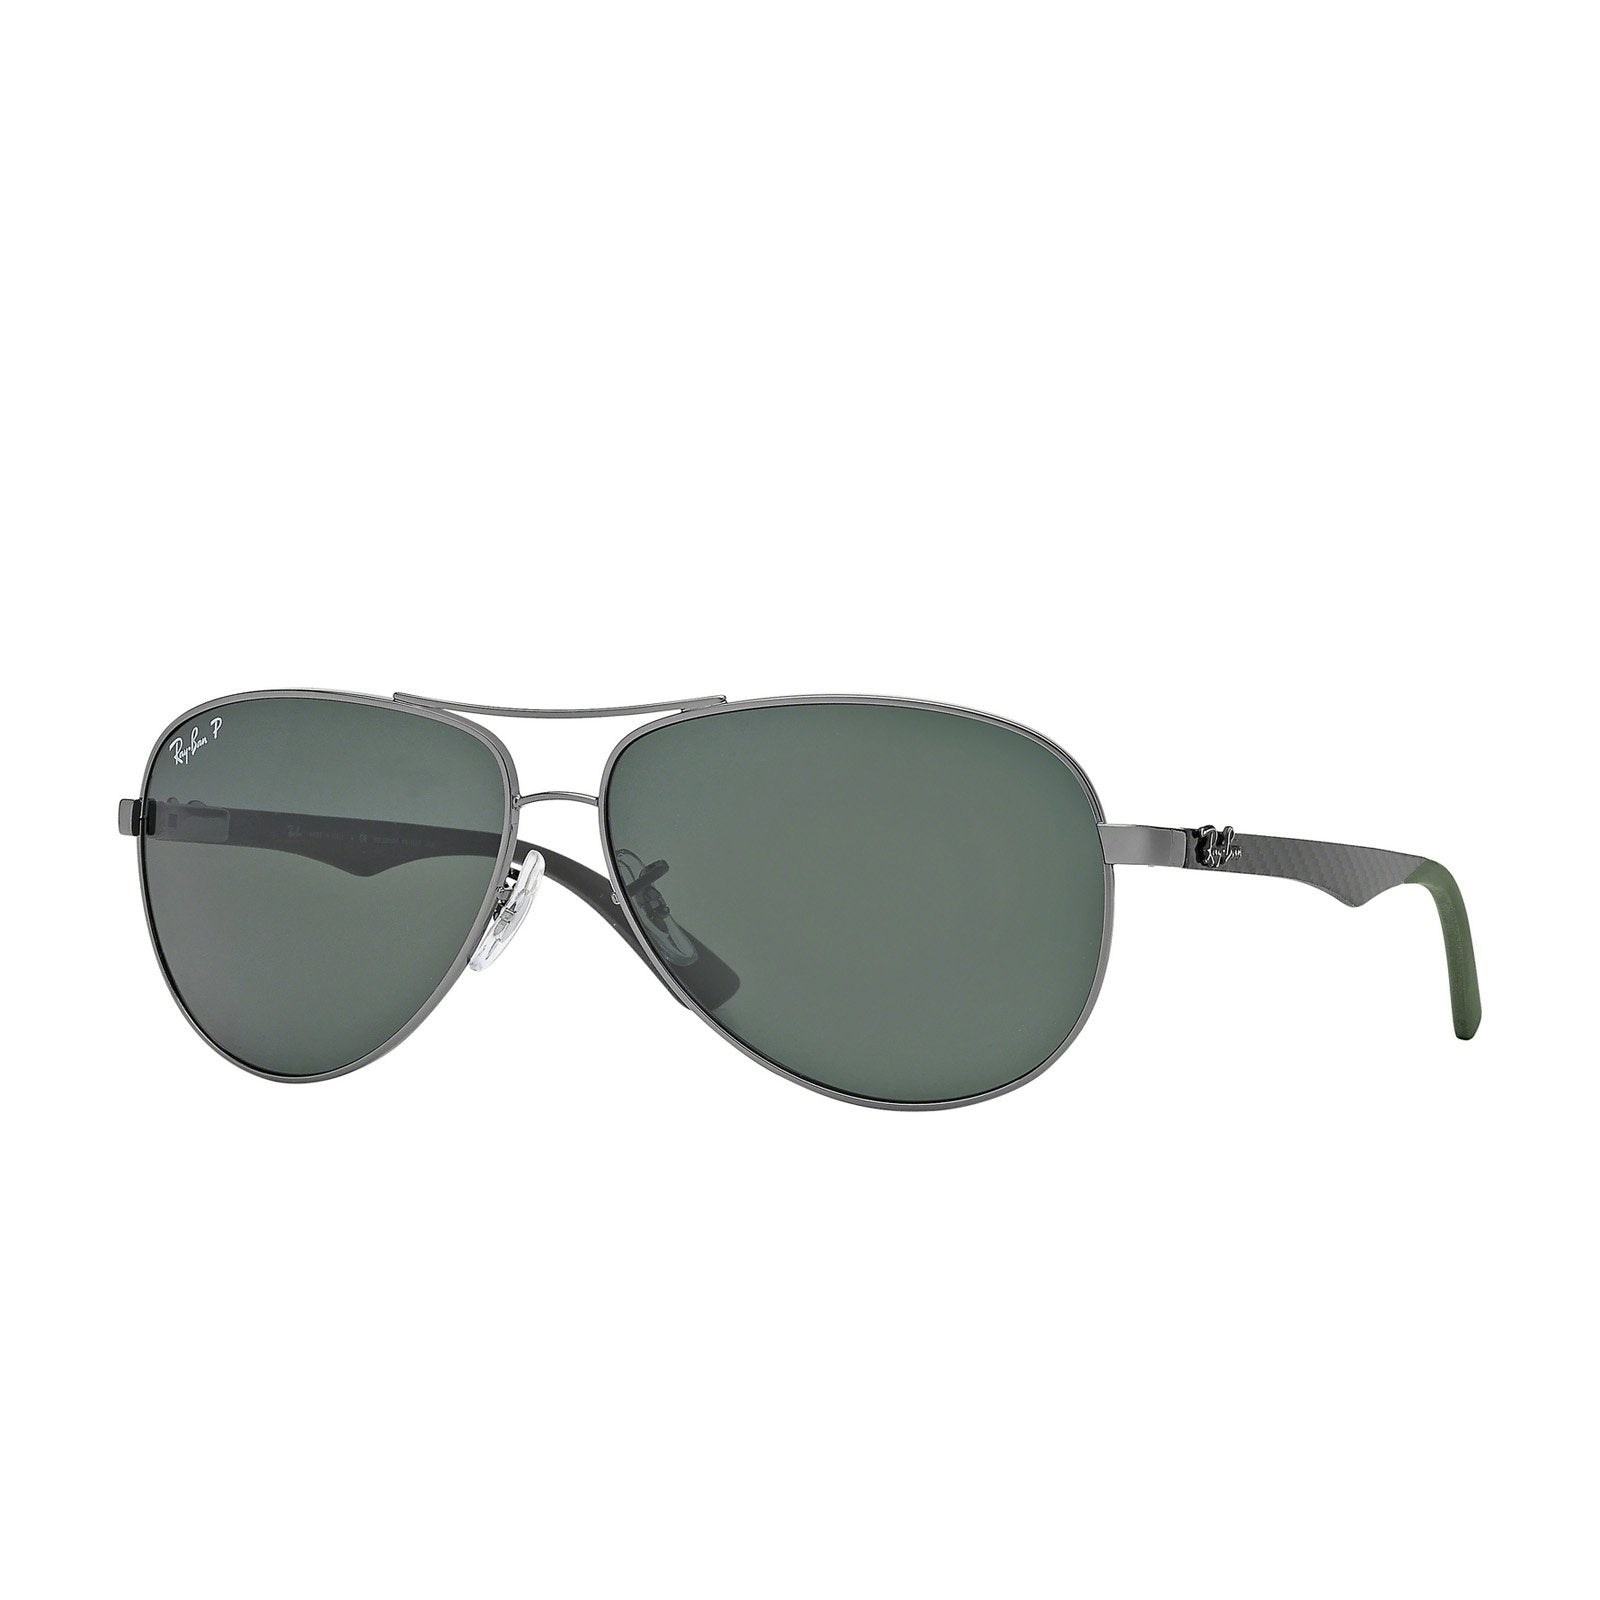 Ray-Ban RB8313 004/N5 Sunglasses